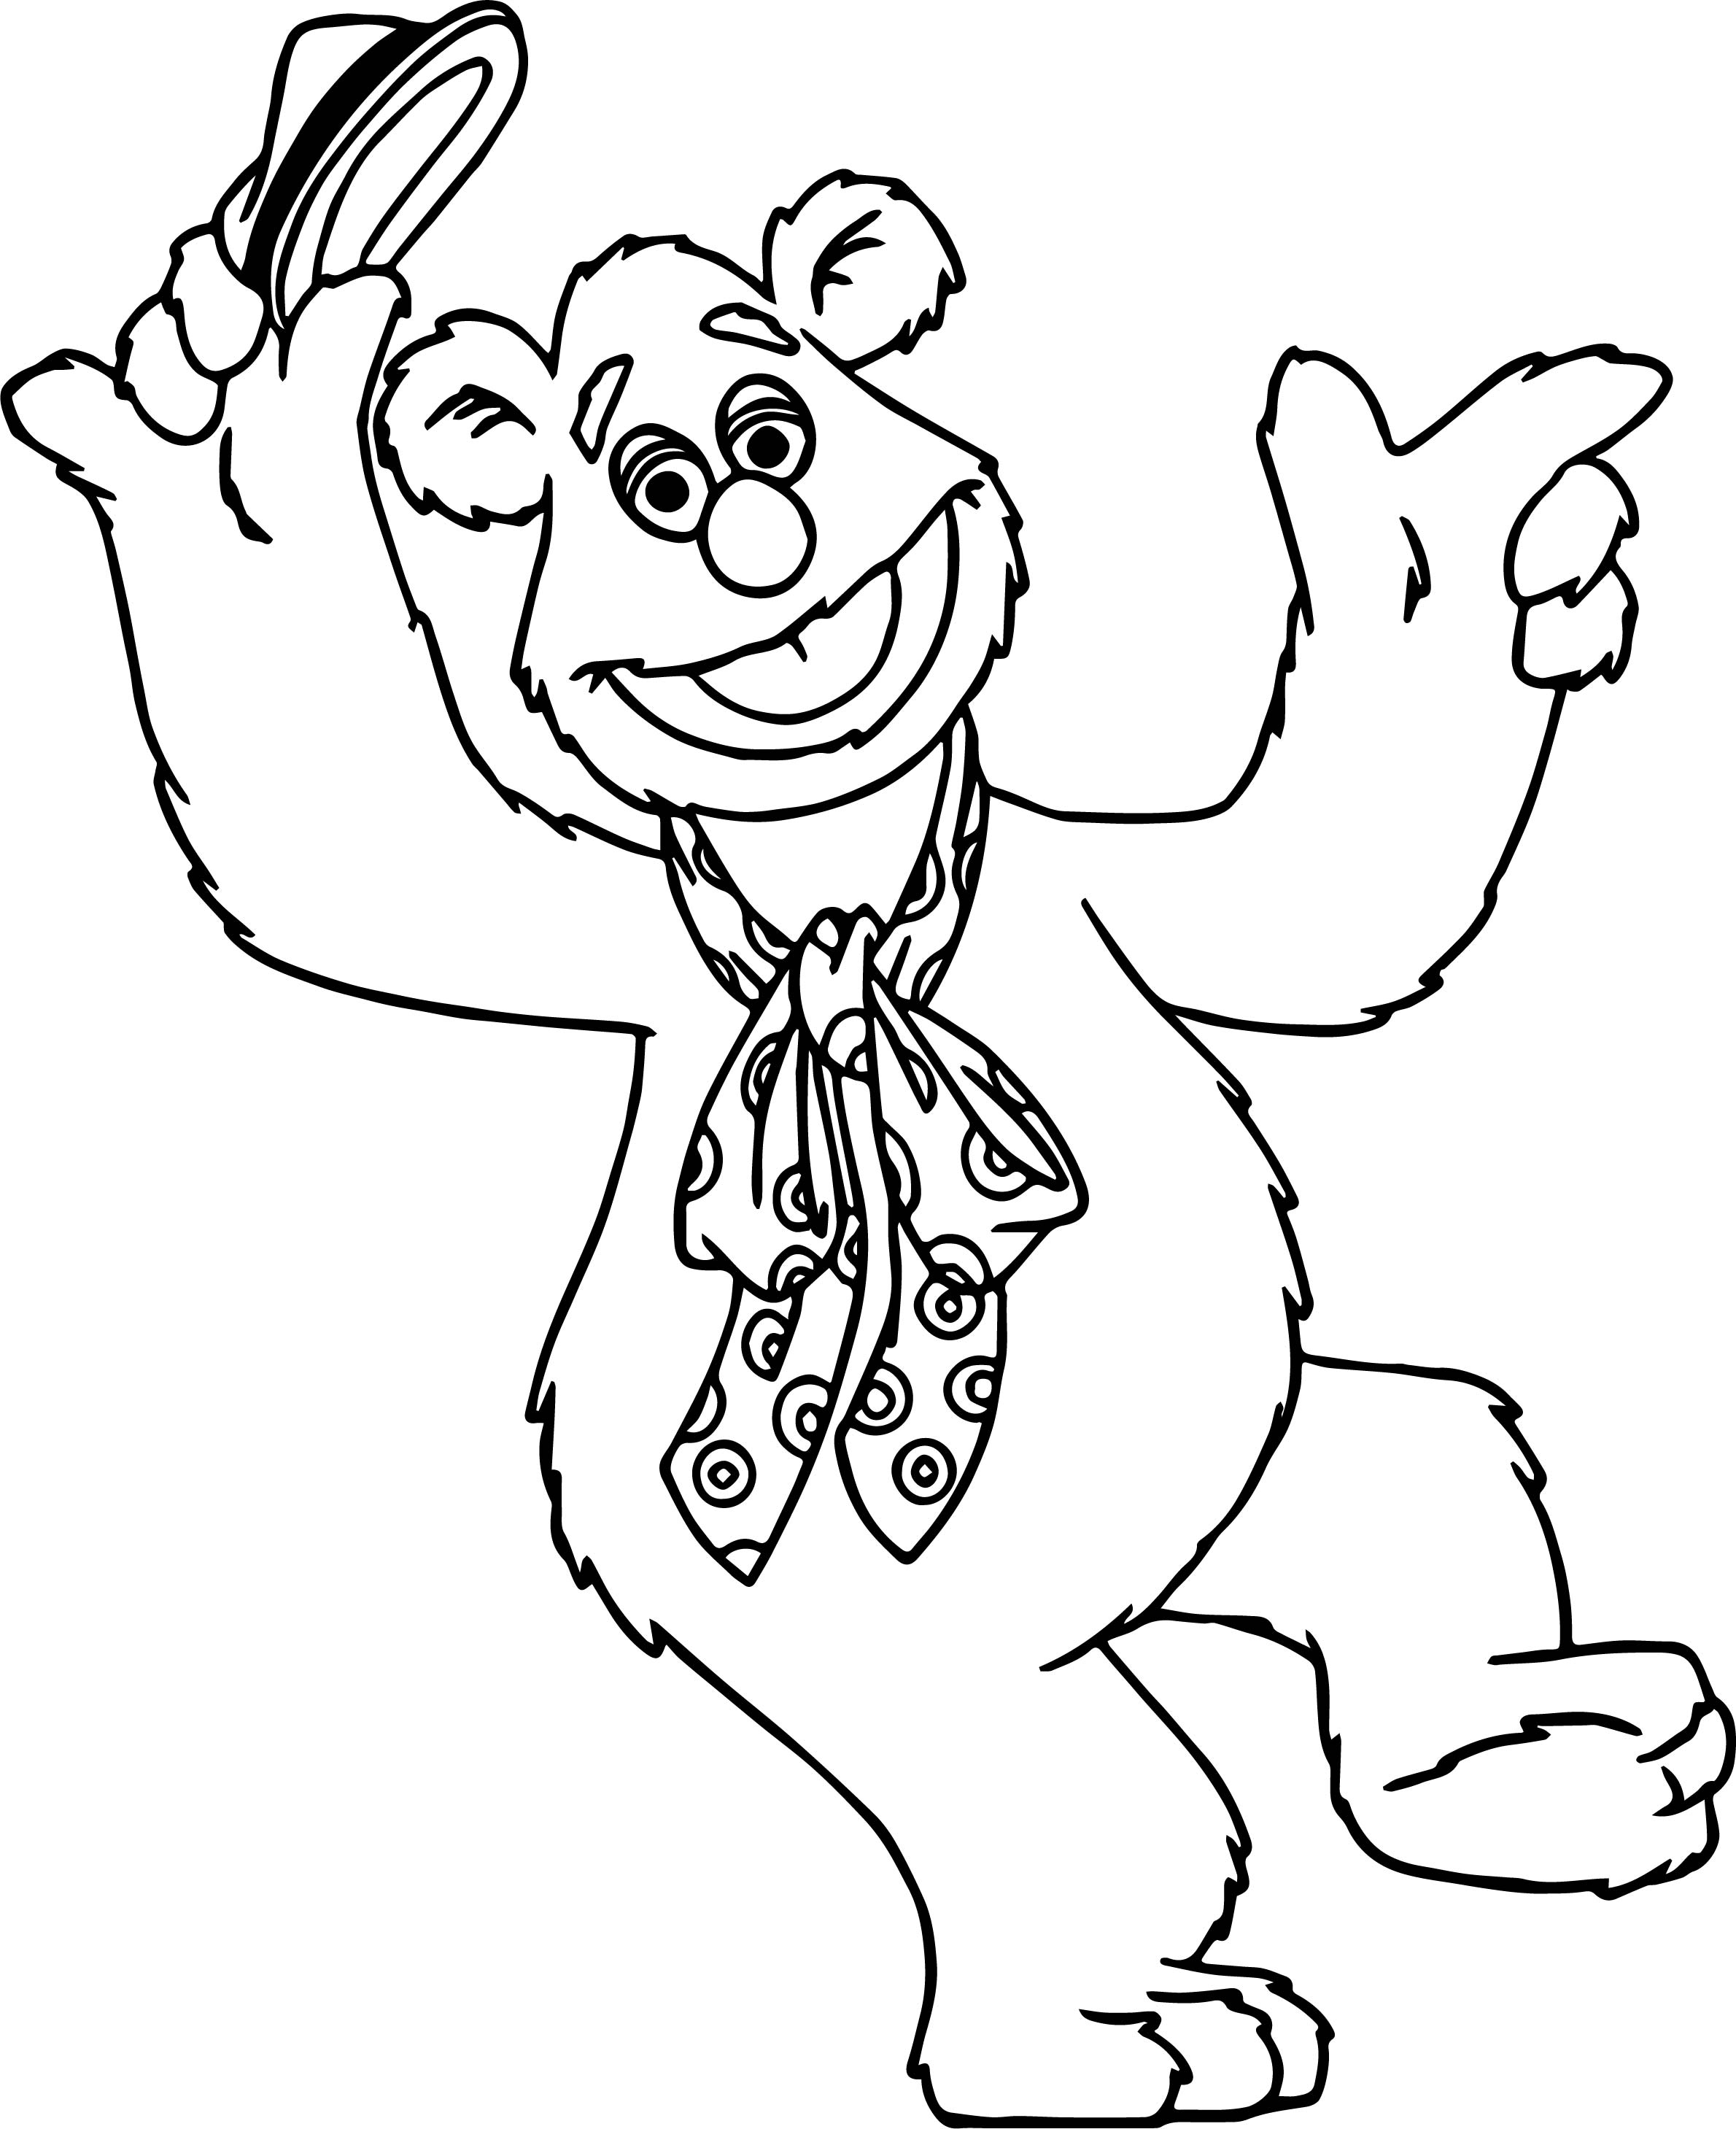 The Muppets Fozzie Bear Coloring Pages